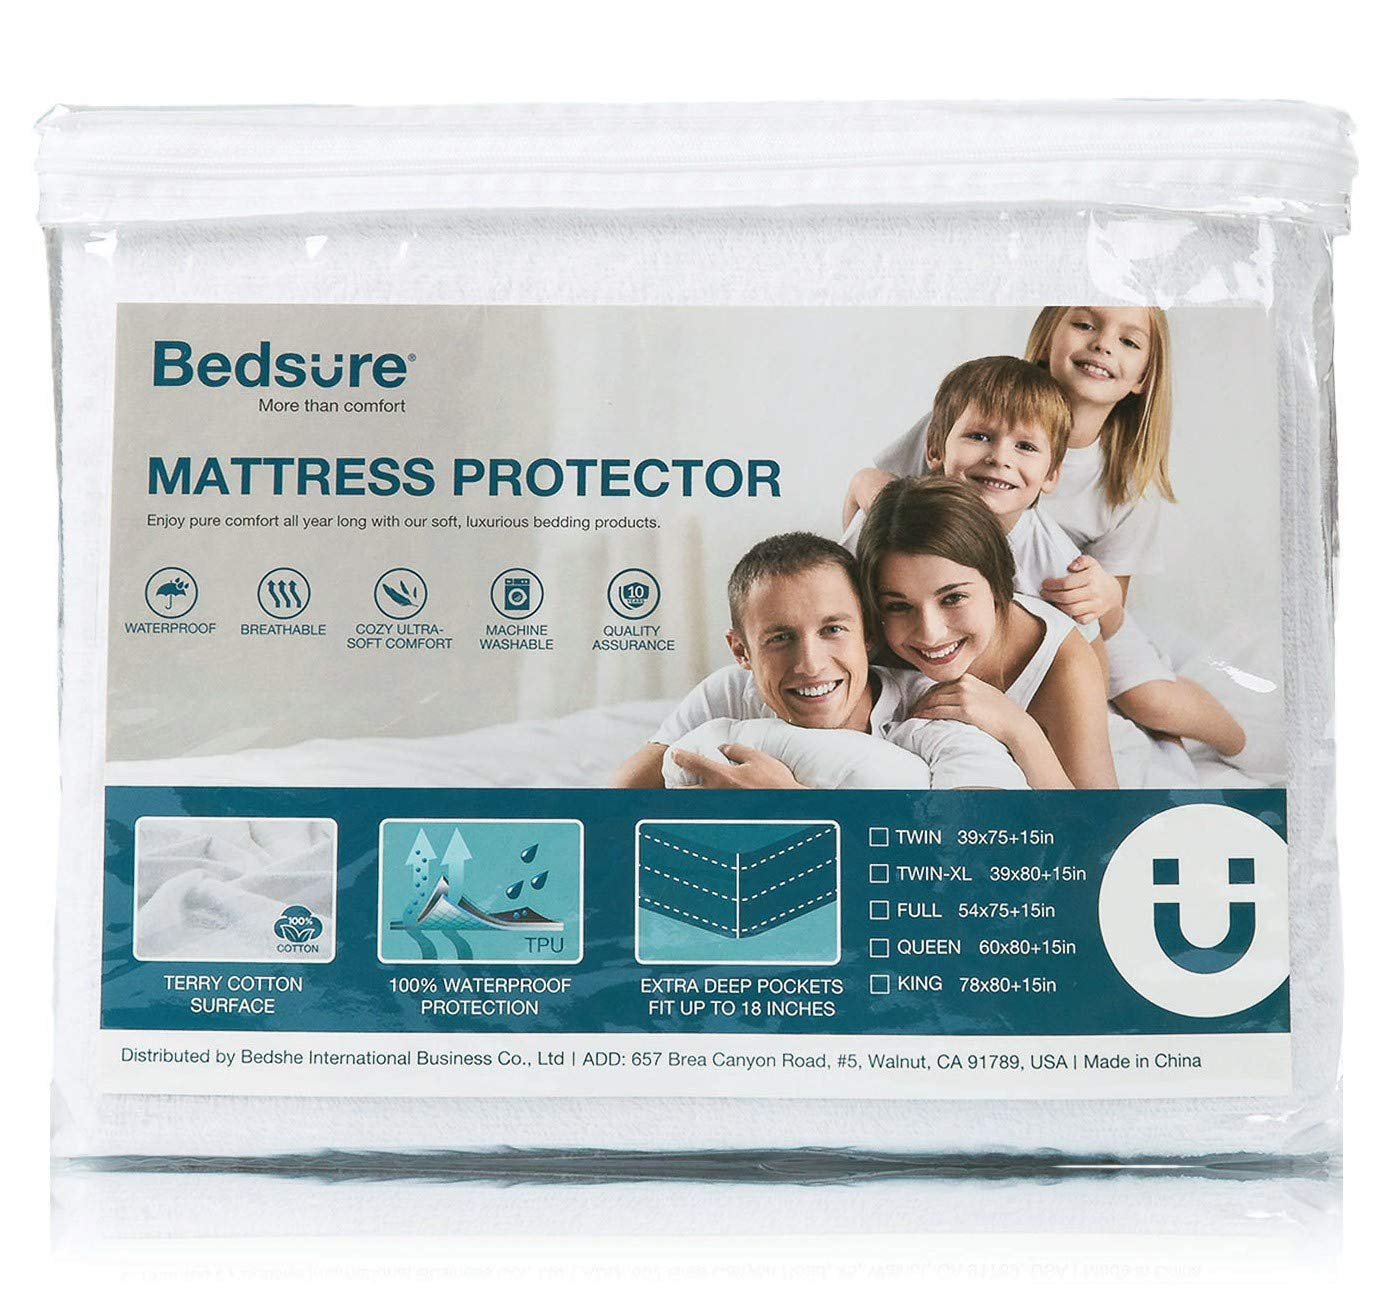 Bedsure 100% Waterproof Mattress Protector Queen Size Terry Cotton Deep Pocket Hypoallergenic Mattress Cover-Vinyl Free White 60'' x 80''